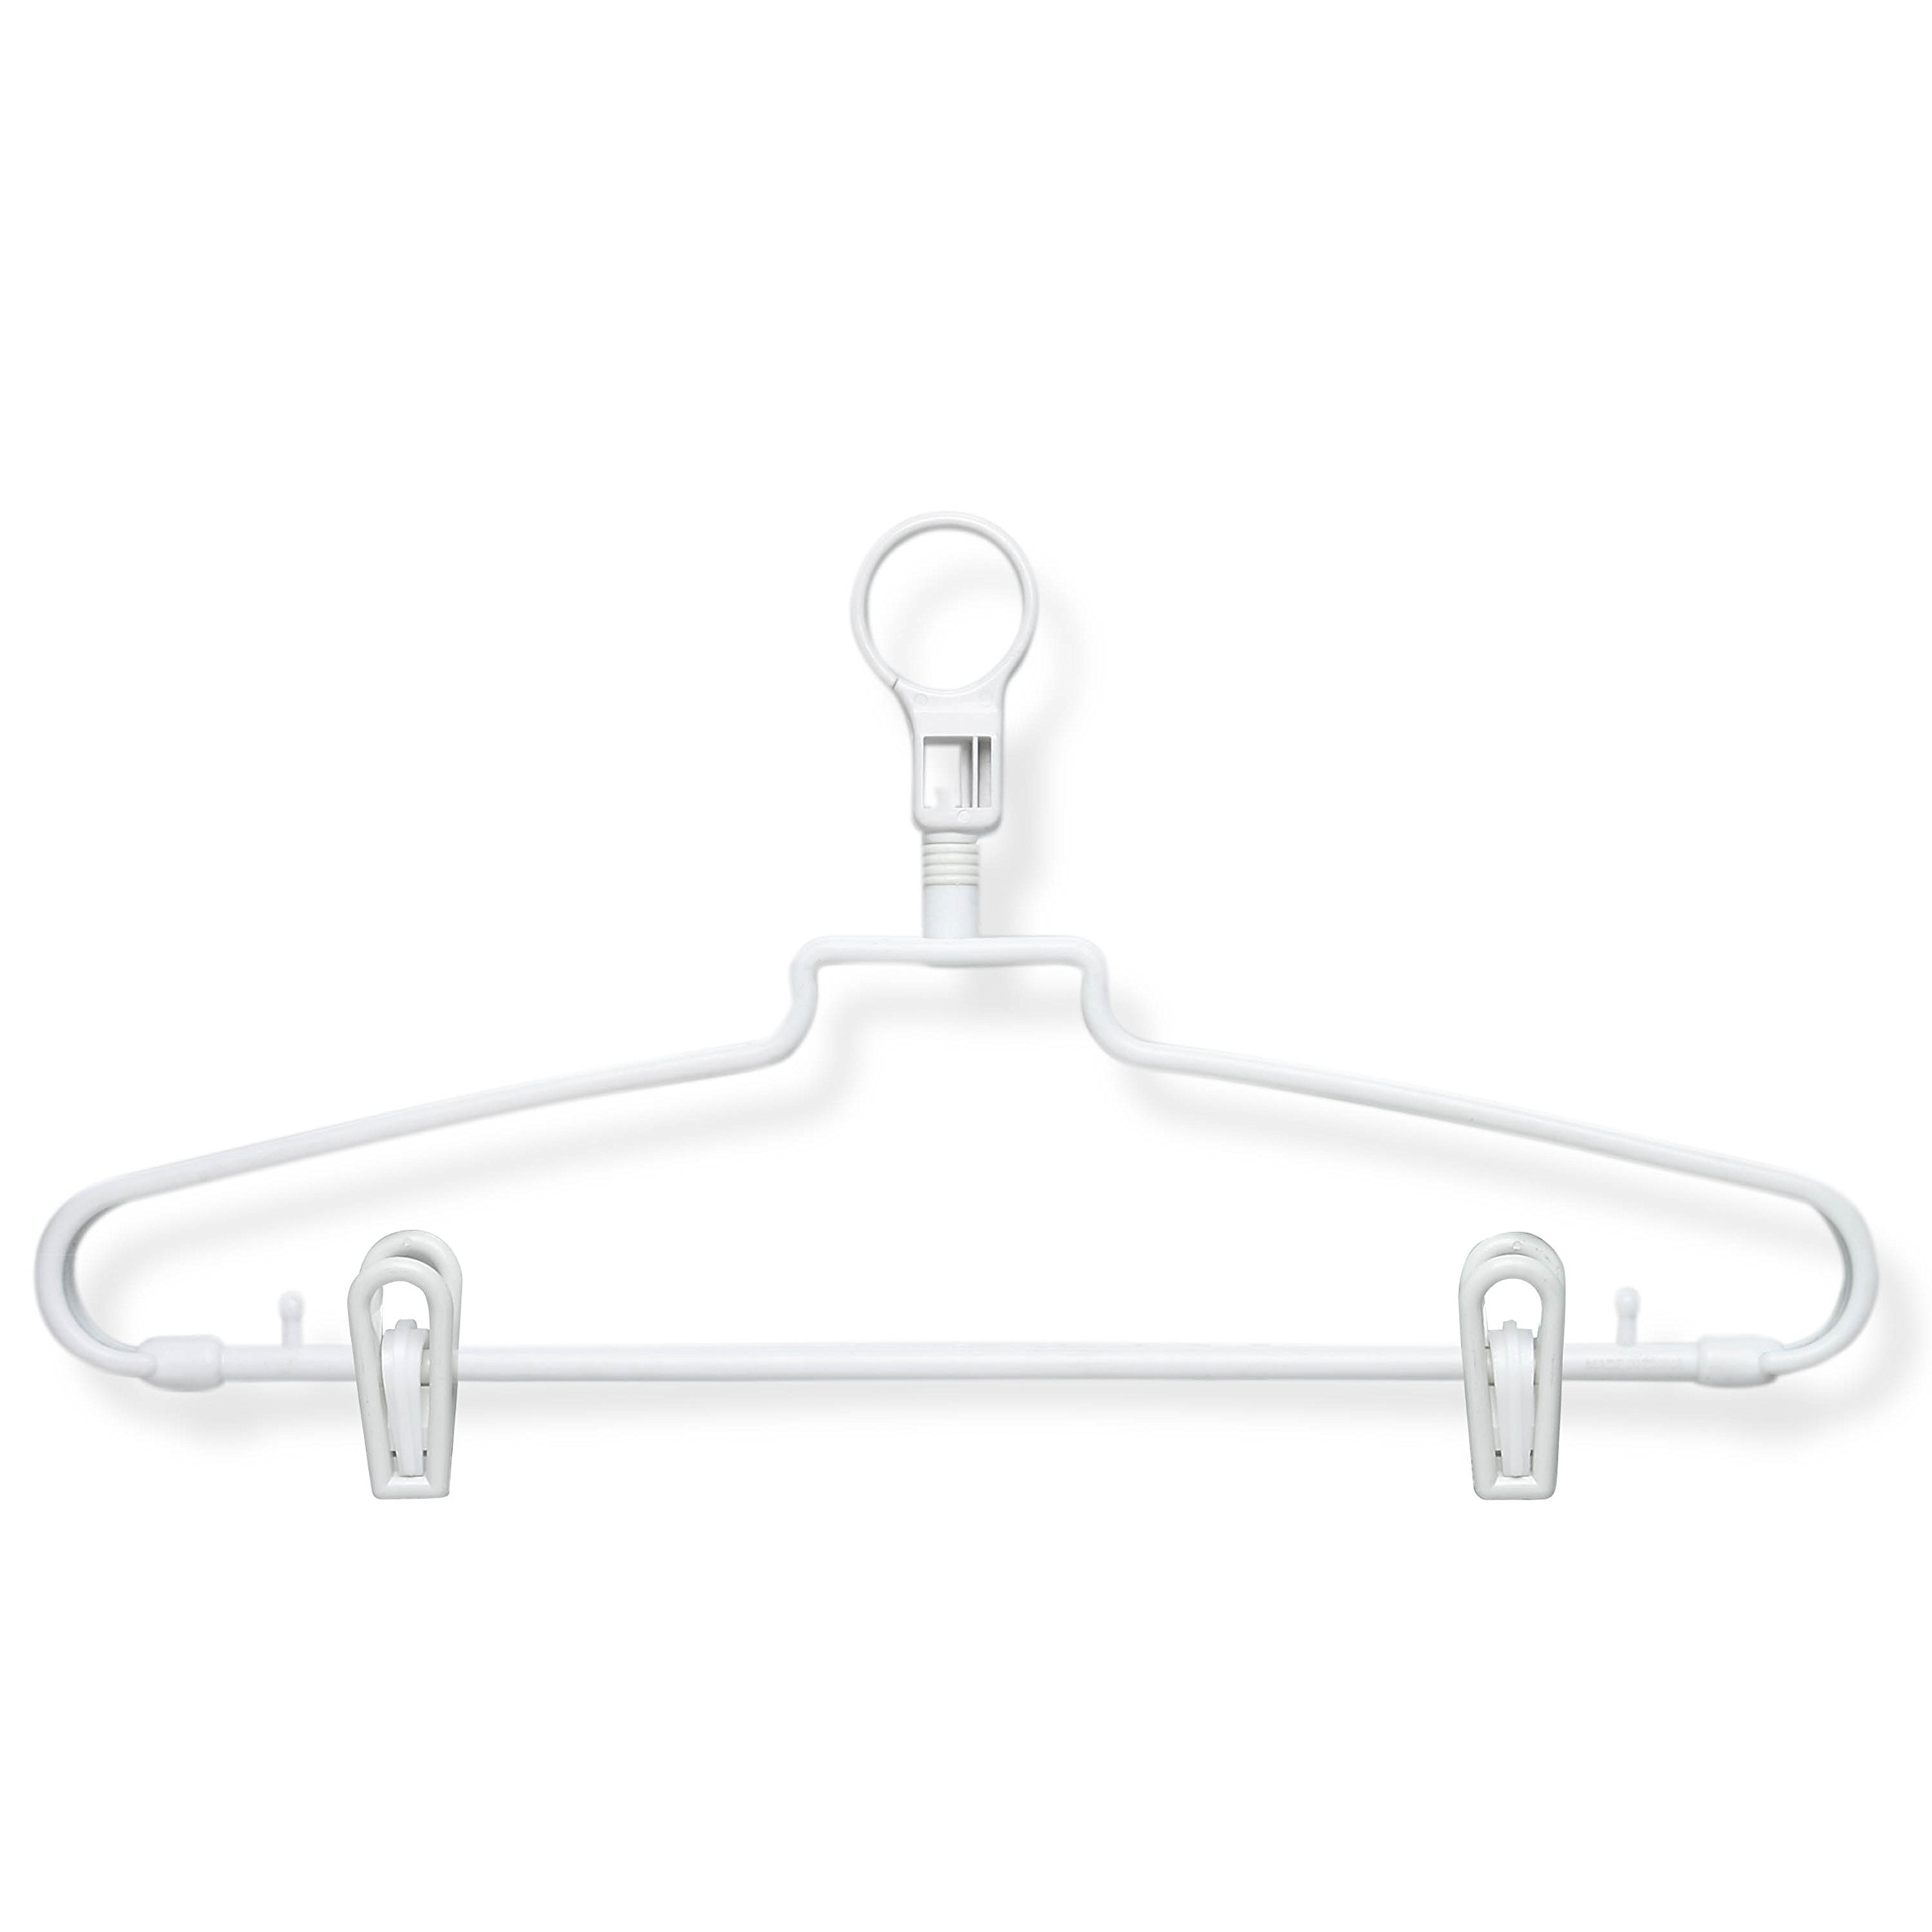 Honey-Can-Do HNG-01357 Hotel Hangers with Security Loop and Clips, 72-Pack